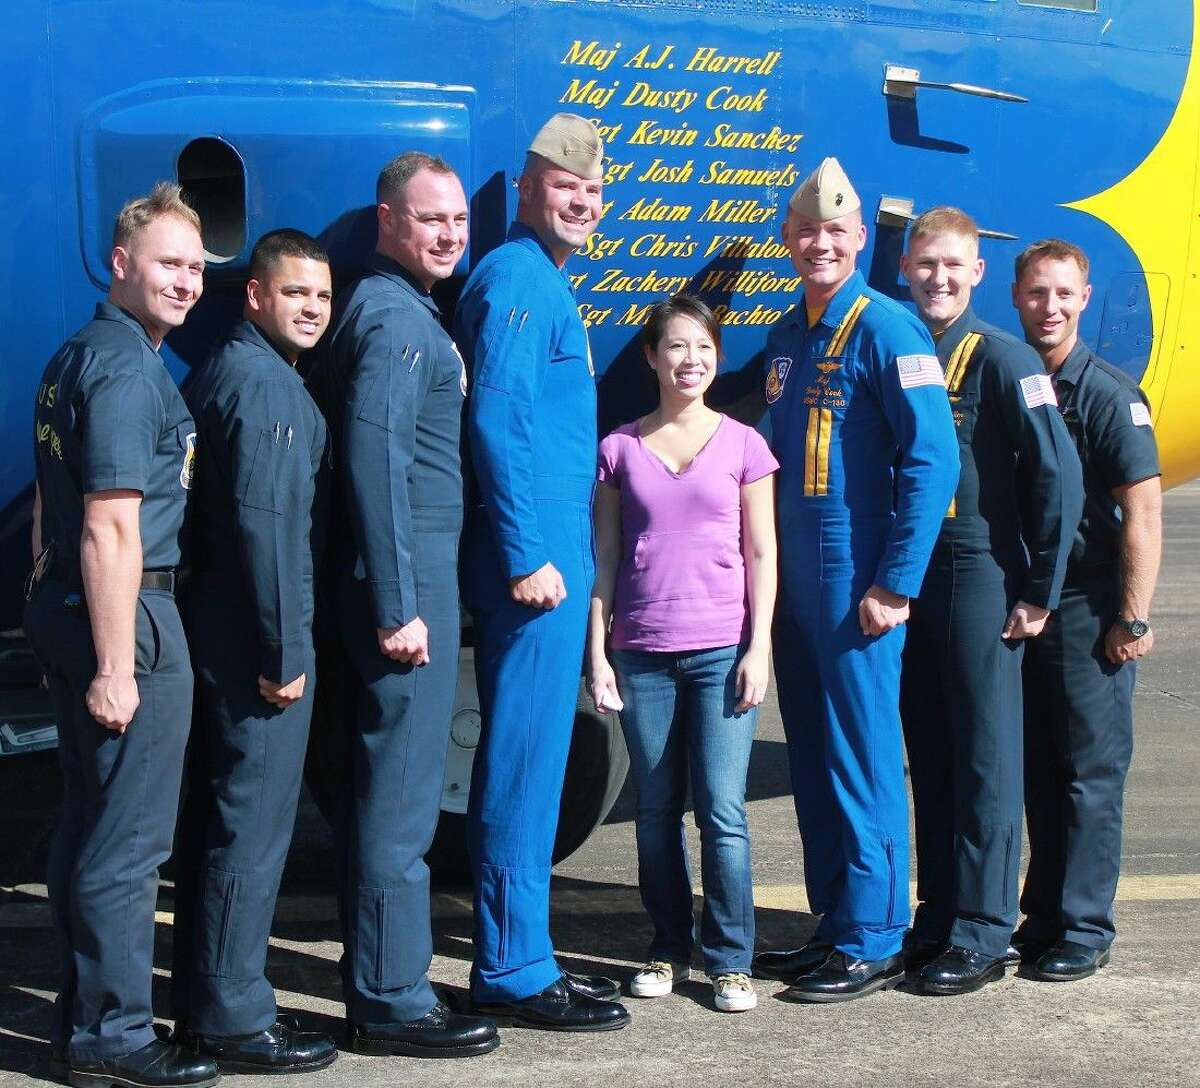 Christine Ha poses with the crew of the Blue Angels C-130.